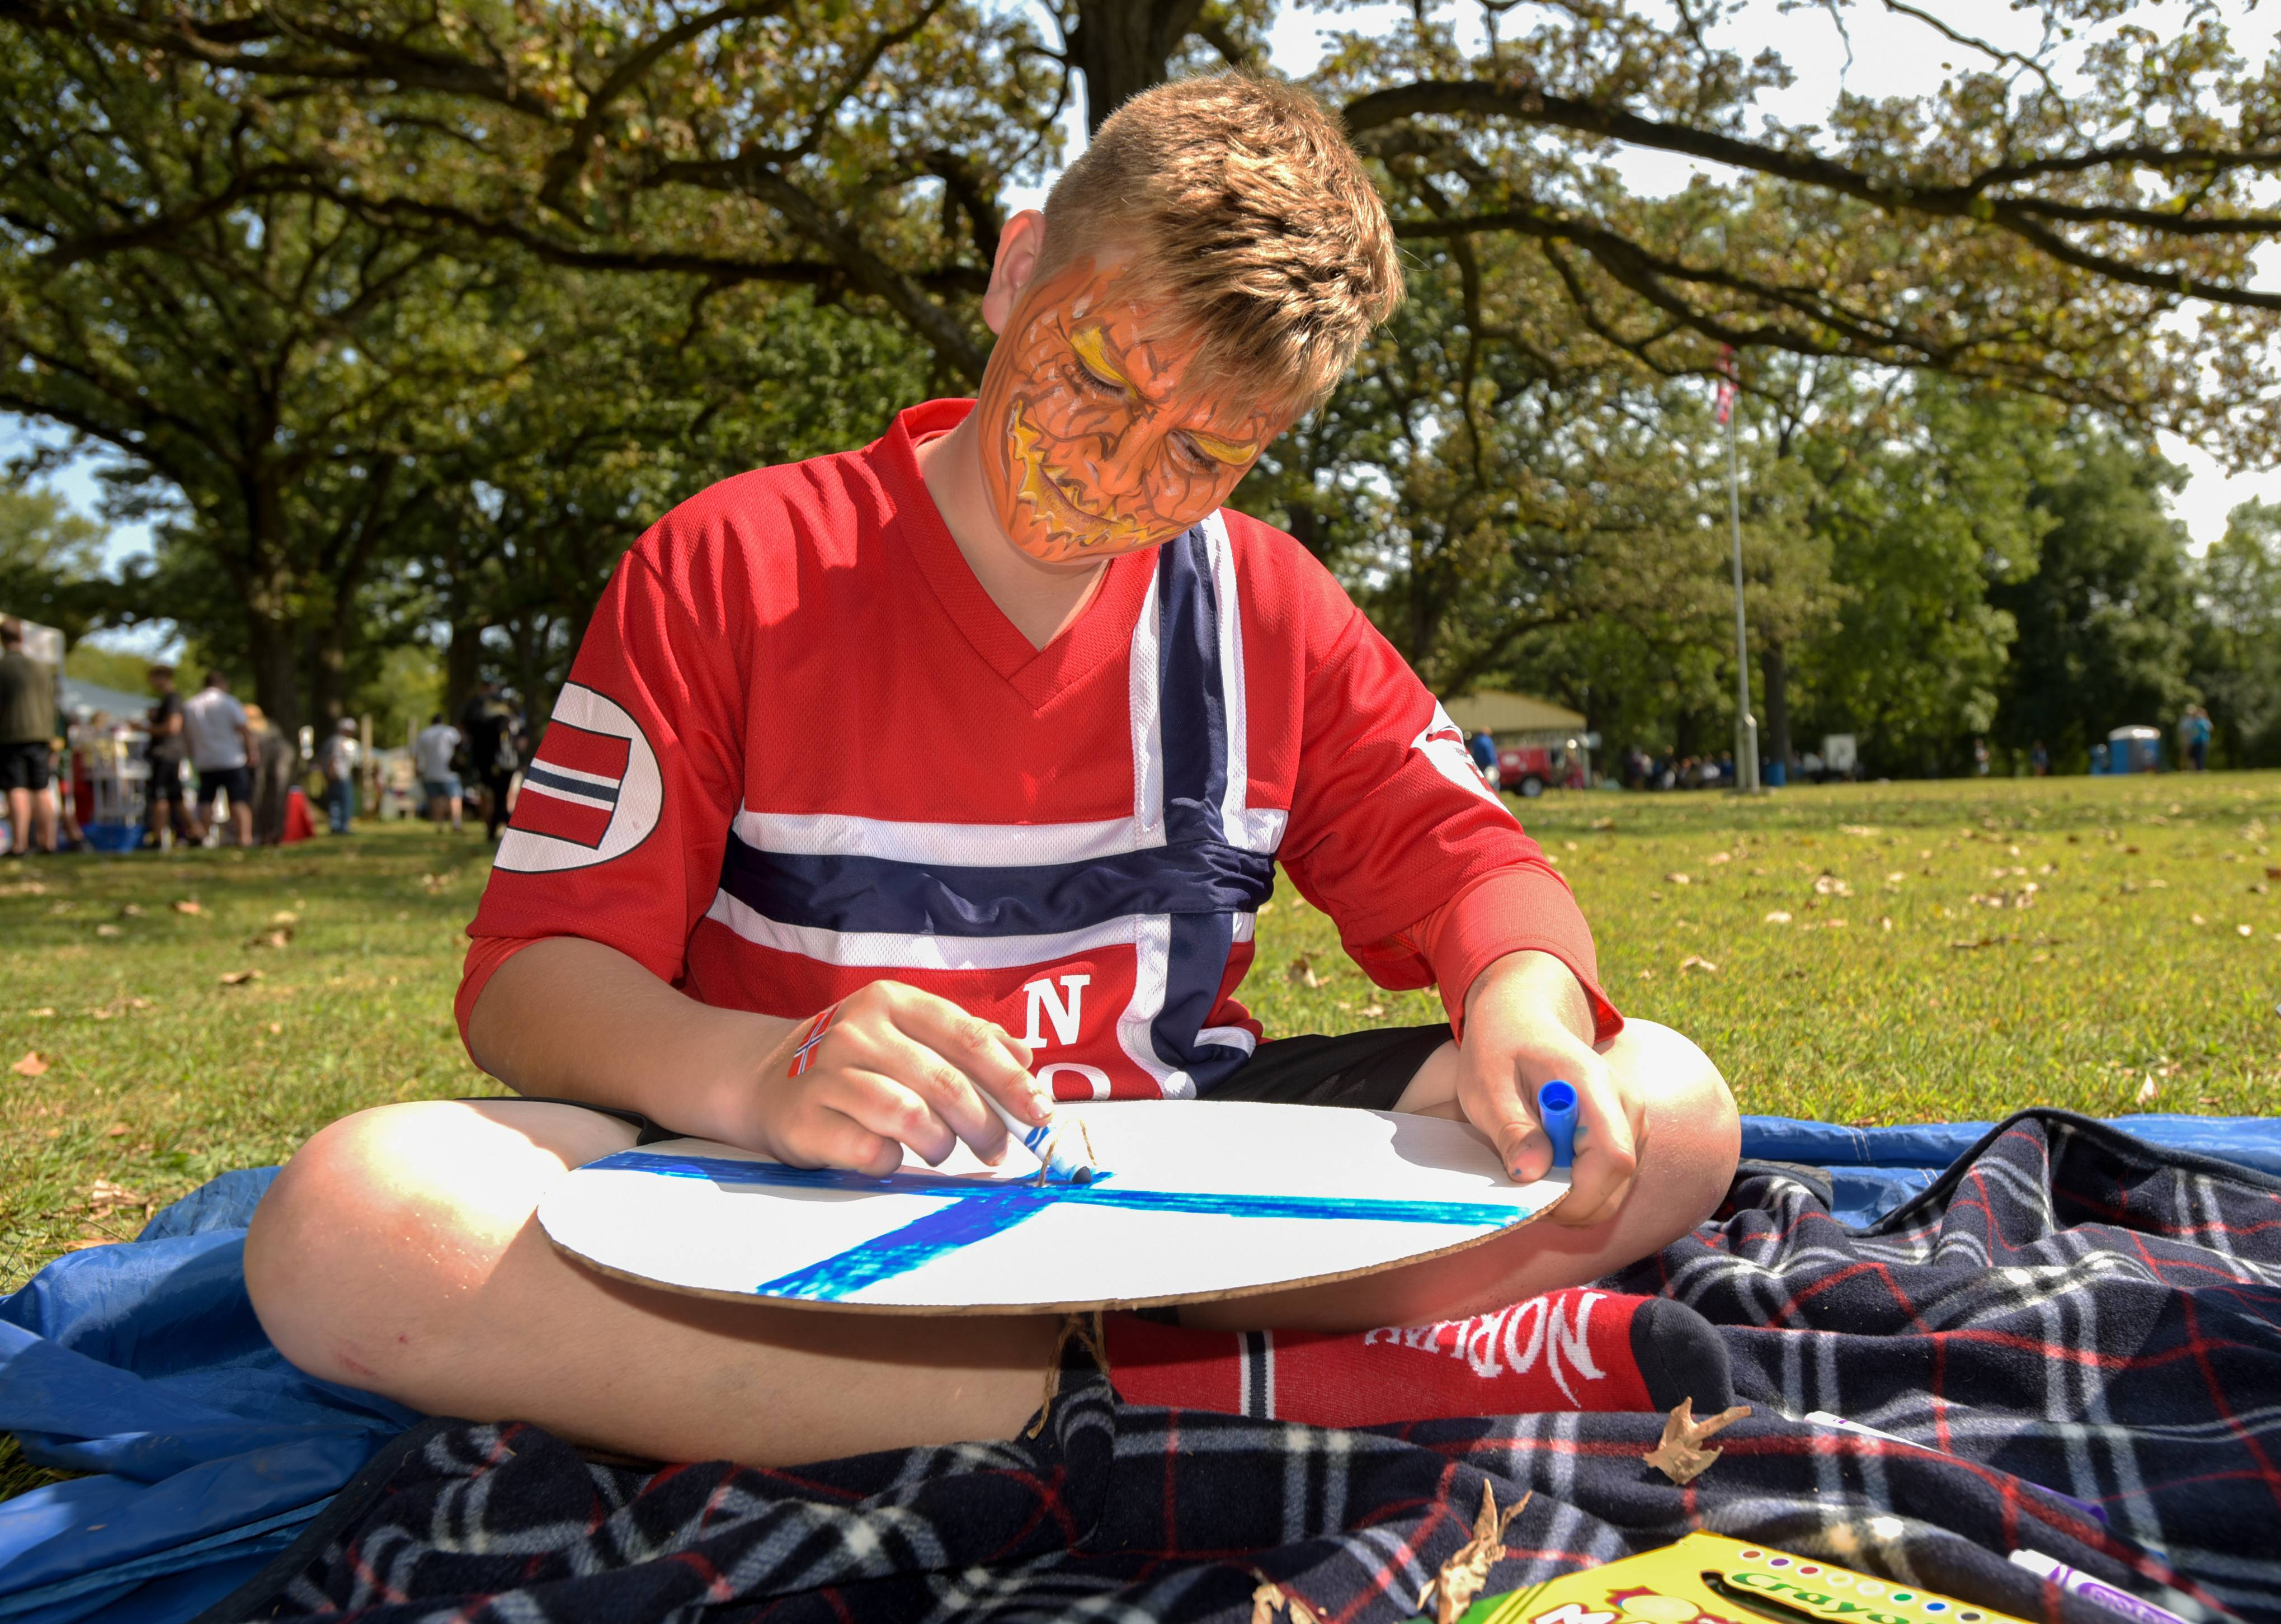 Austin Forney, 12, of Chicago draws a Norwegian flag design on his Viking shield during the 38th Annual Scandinavian Day Festival Sunday in South Elgin.